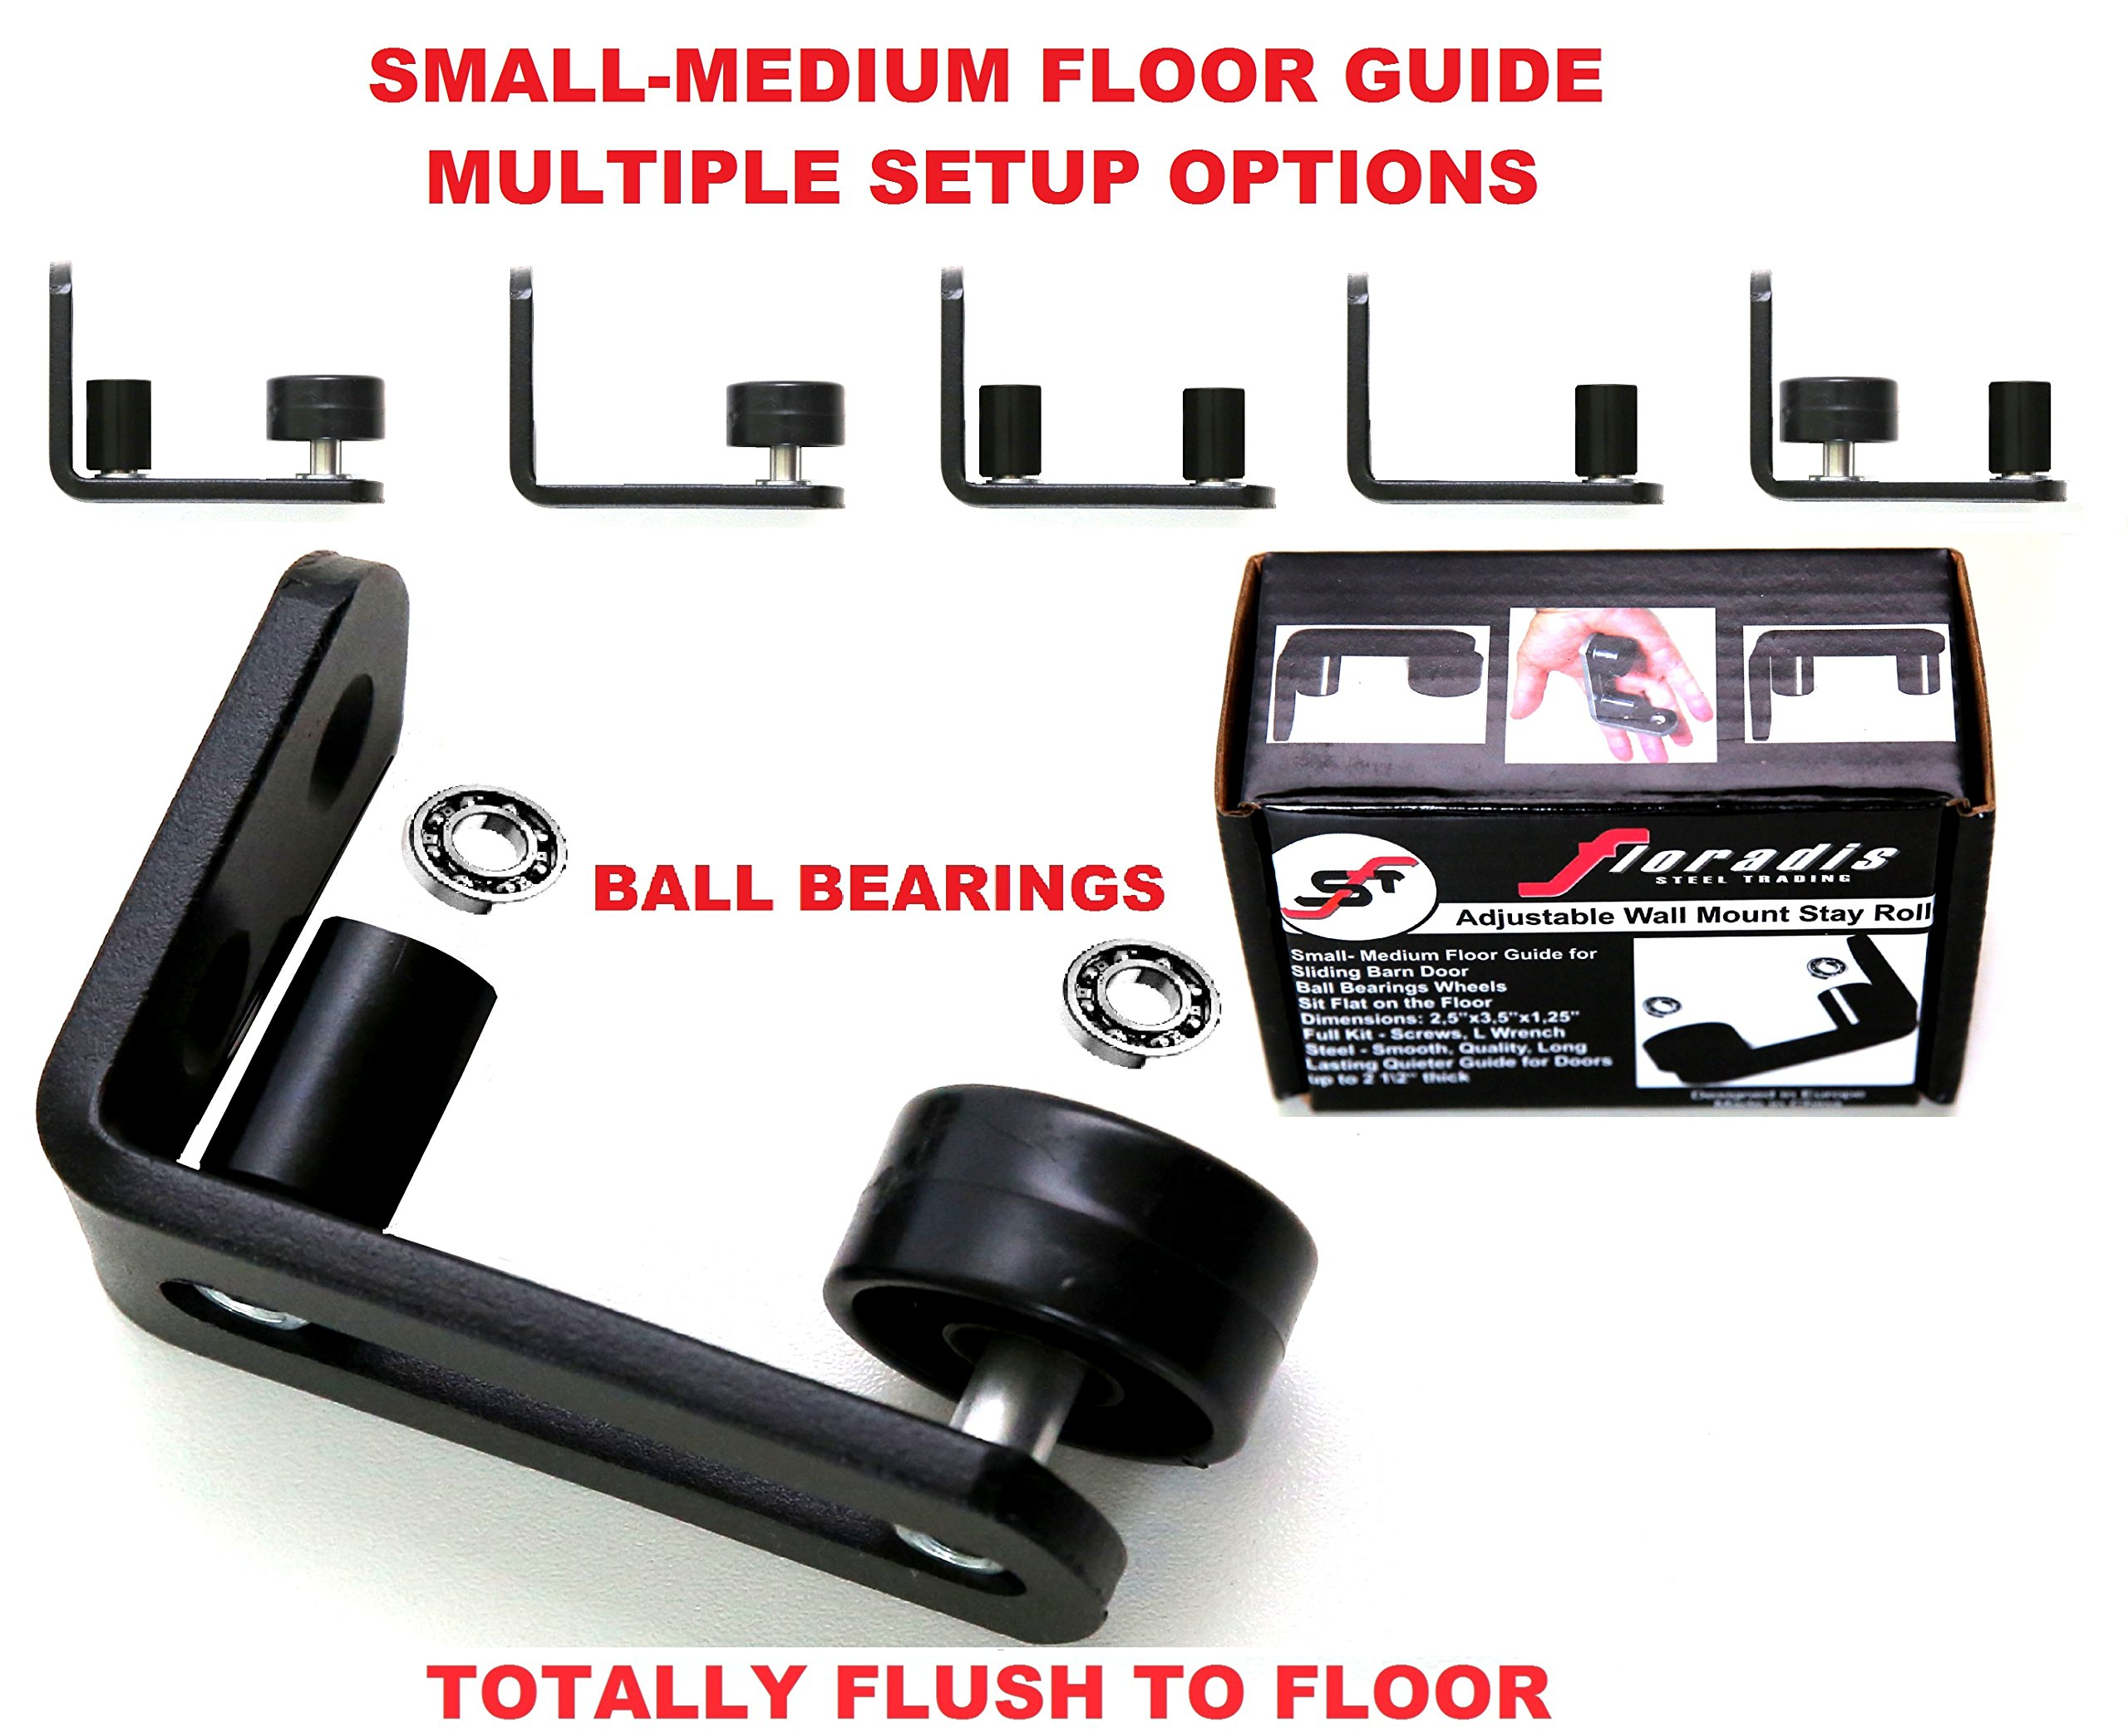 NEW * FLORADIS SMALL STAY ROLLER FLOOR GUIDE for BOTTOM of SLIDING BARN DOORS / SITS FLUSH to the FLOOR/ ULTRA SMOOTH FULLY ADJUSTABLE MULTIPLE SETUPS WALL MOUNT STOP GUIDES/ BALL BEARINGS WHEELS by Floradis Steel Trading (Image #2)